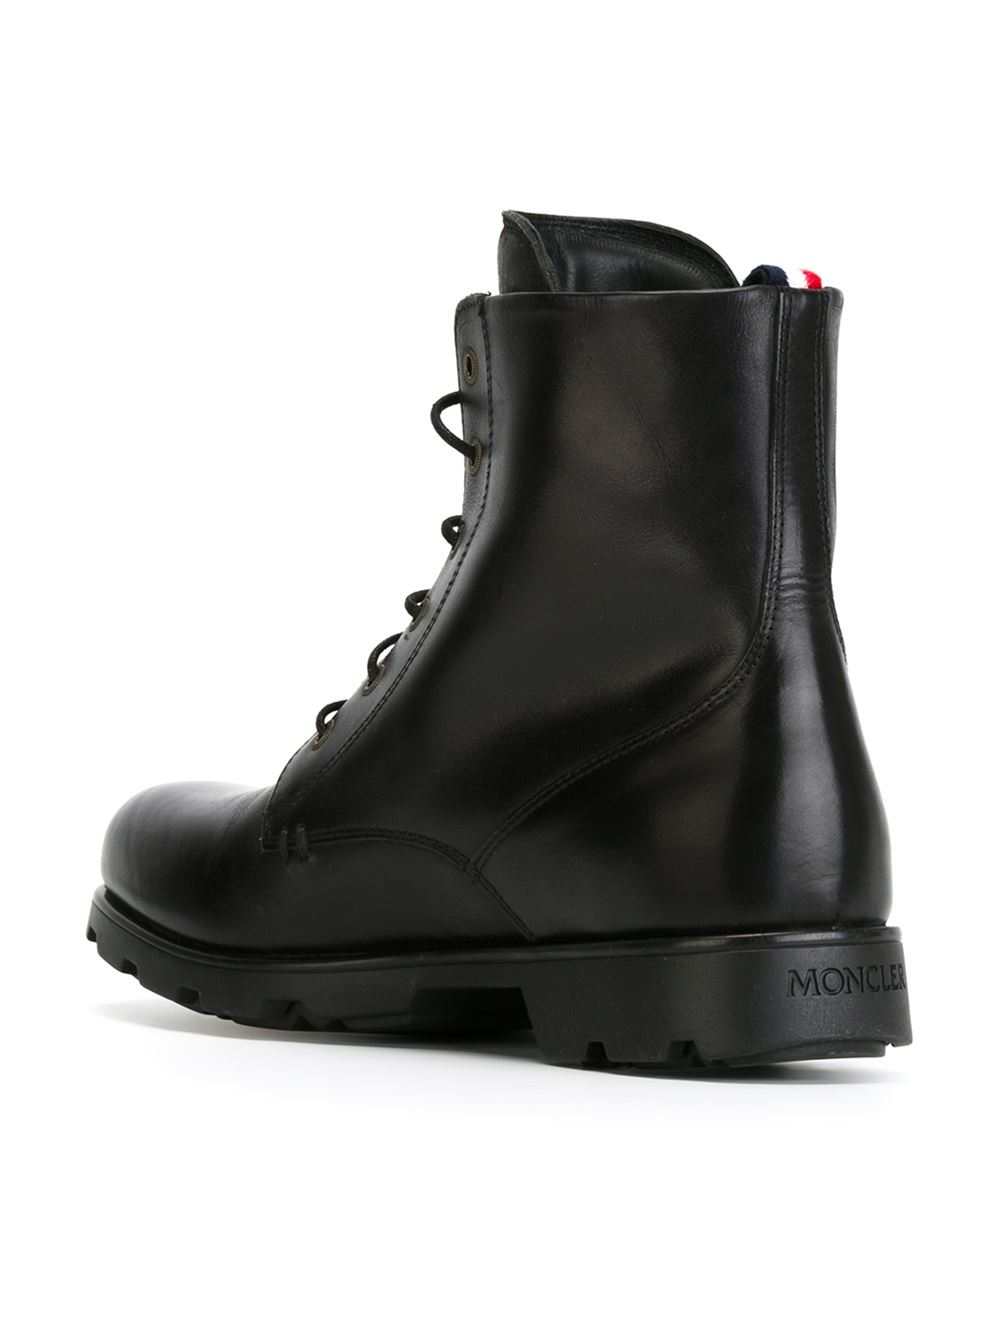 moncler lace up leather ankle boots in black for lyst